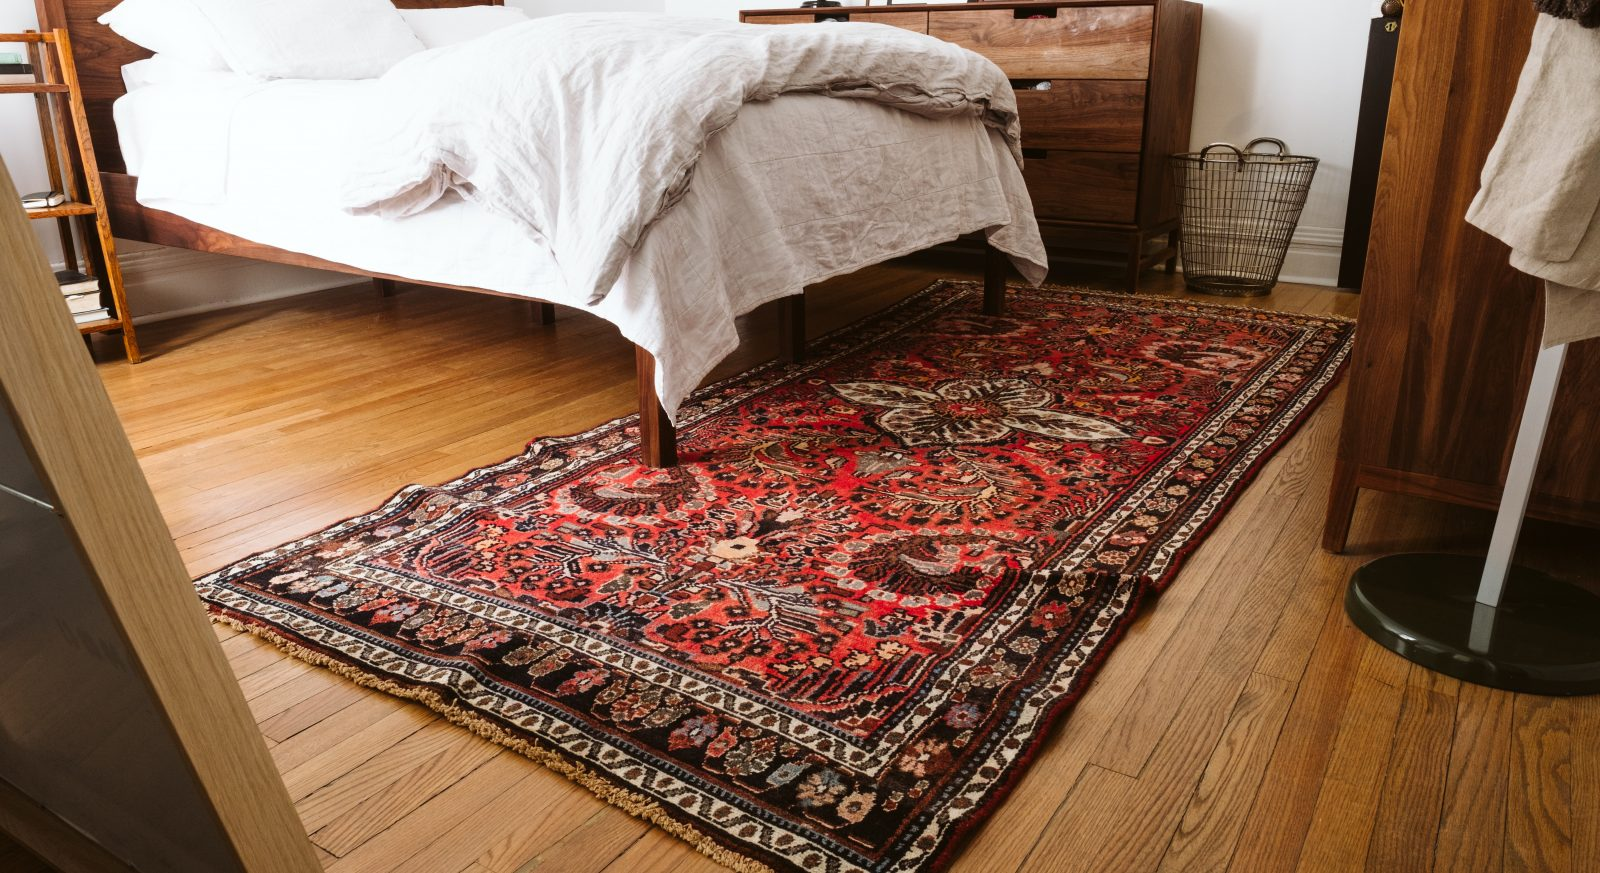 Rug Sizing How To Choose The Right Rug Size For Your Bedroom Ambitious Home